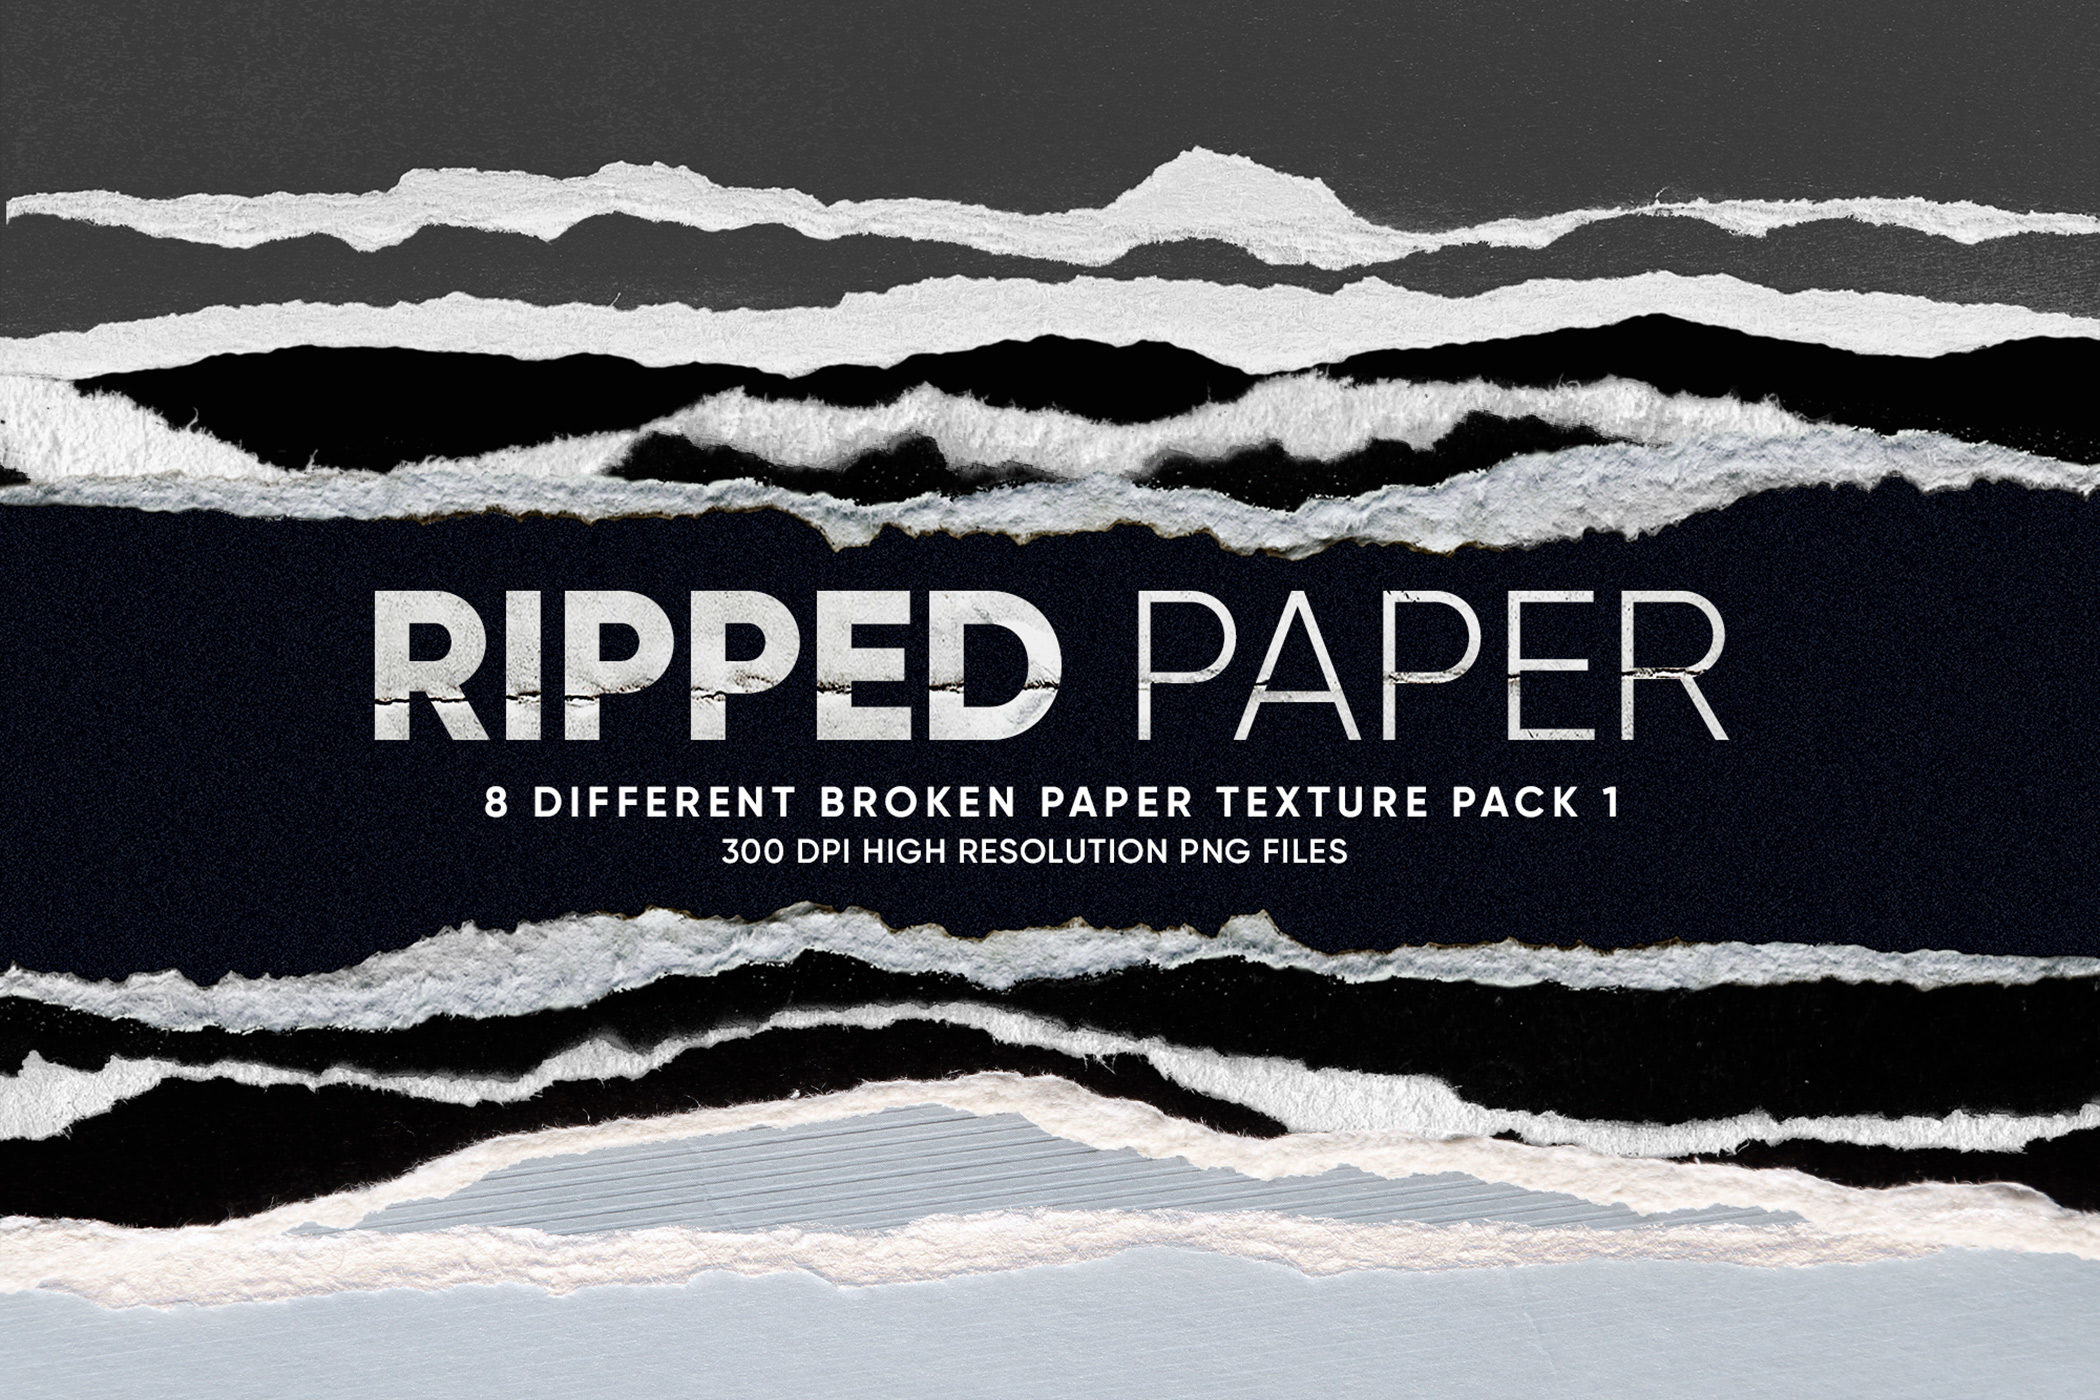 https://nusupply.co/wp-content/uploads/2019/11/ripped-paper-design-asset-pack-2100x1400.jpg